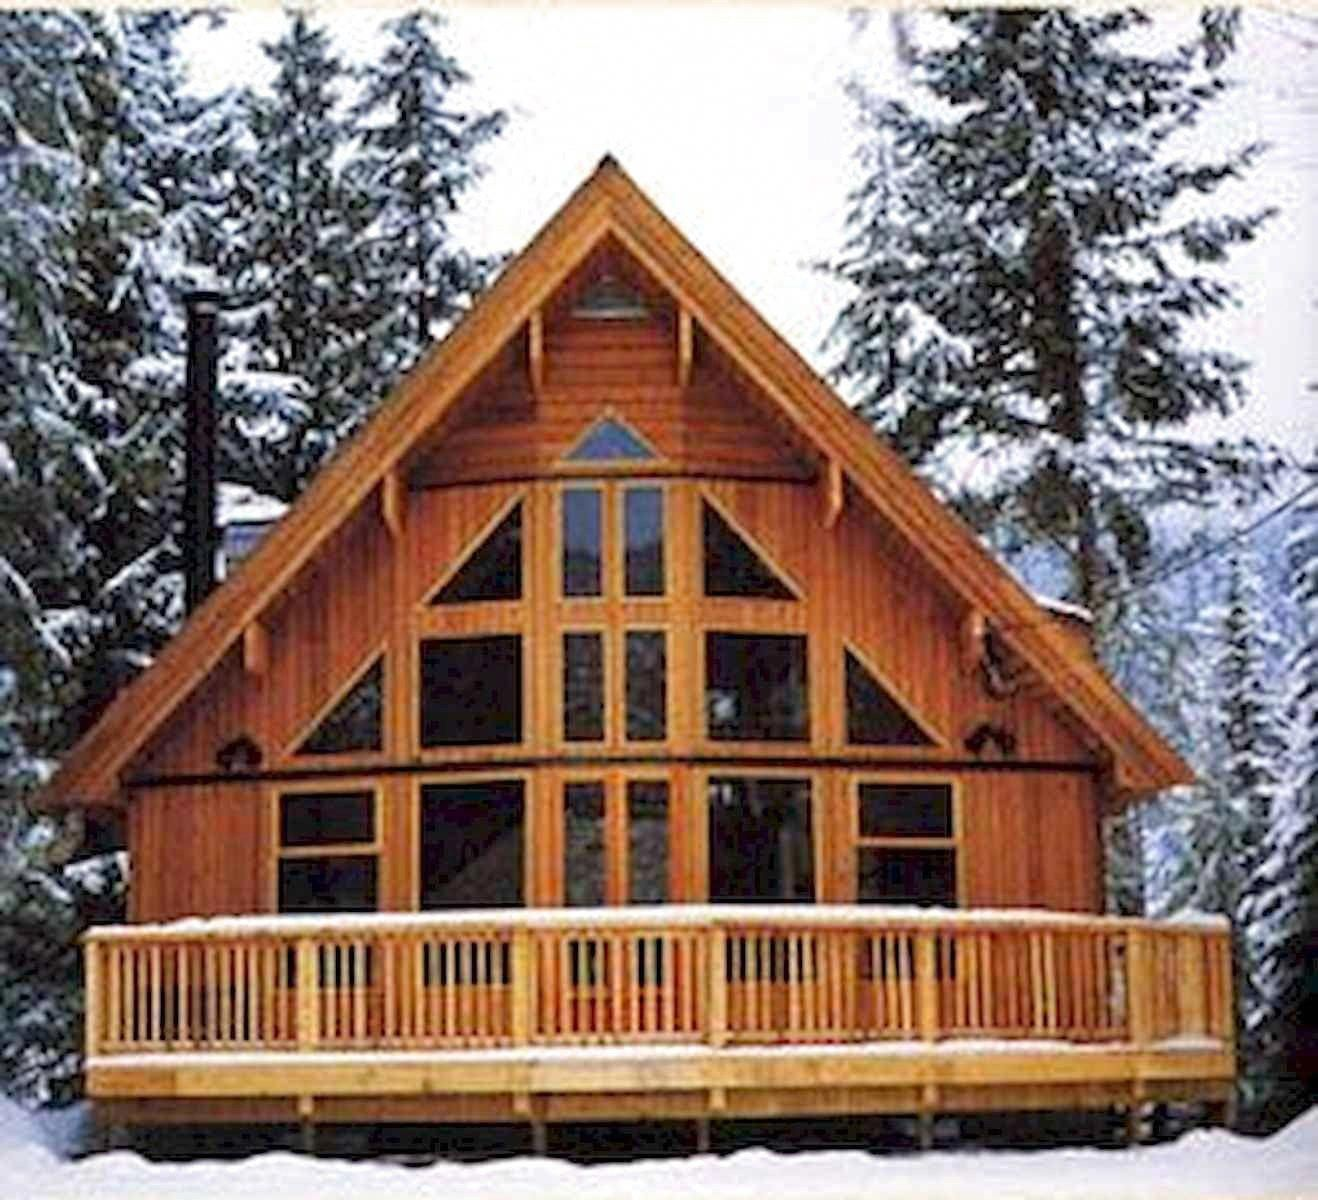 Inspiring Schemes That We Definitely Like Logcabin In 2020 A Frame House Plans Prefabricated Cabins Log Cabin Homes